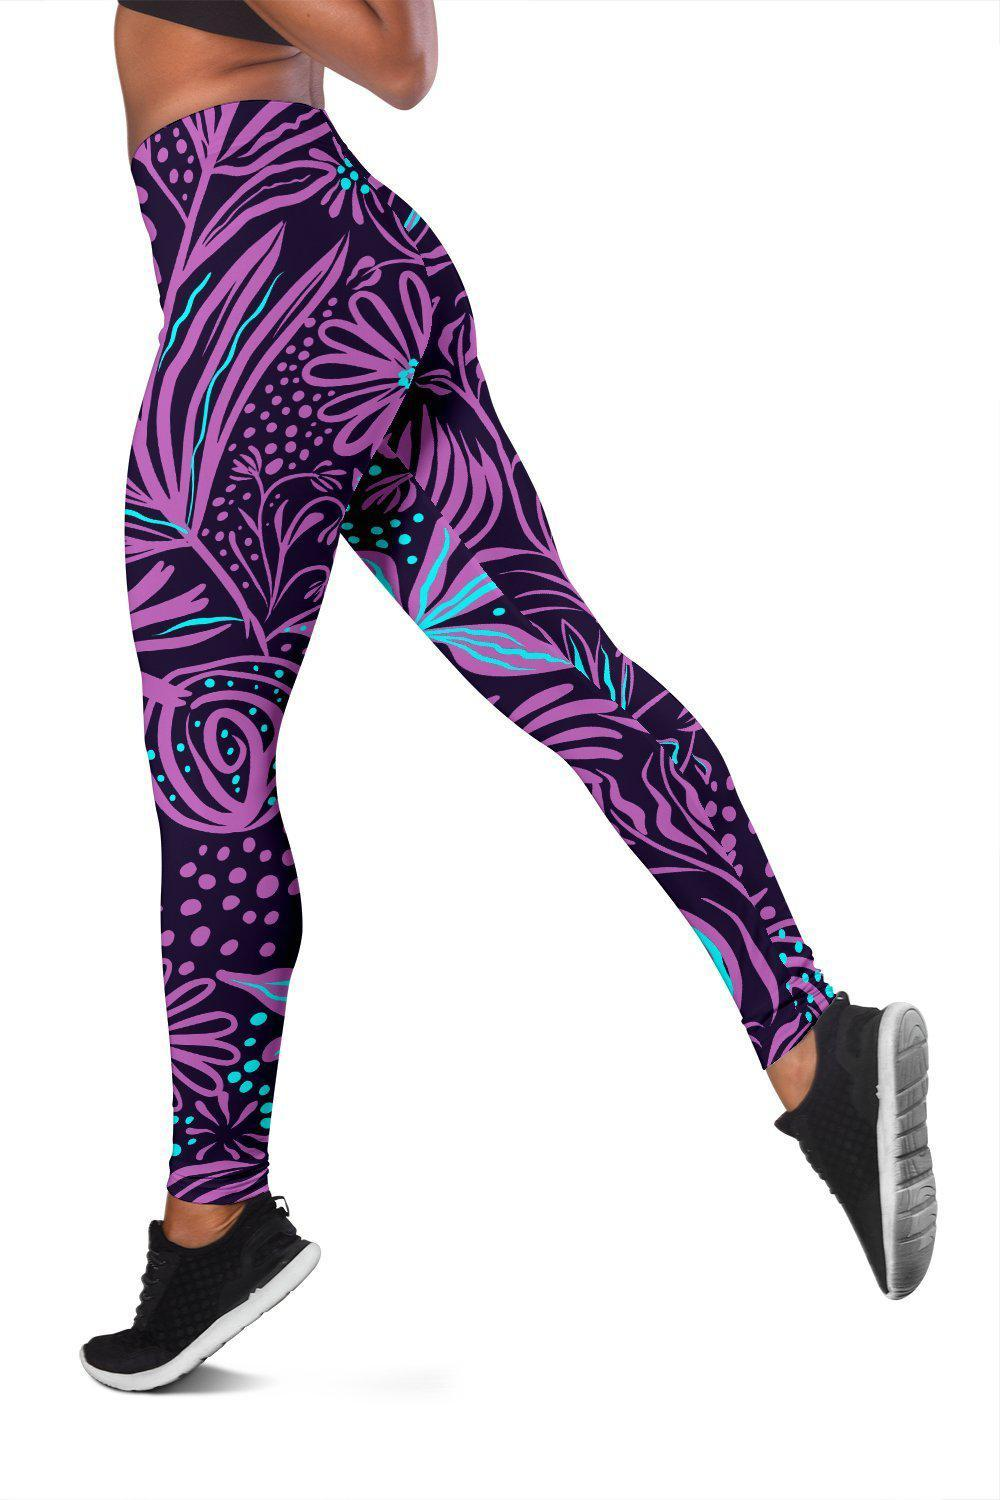 Purple - Women's Leggings - Create Your Own Custom Apparel T-Shirts Home Decor Lifestyle The Harry Potter Store